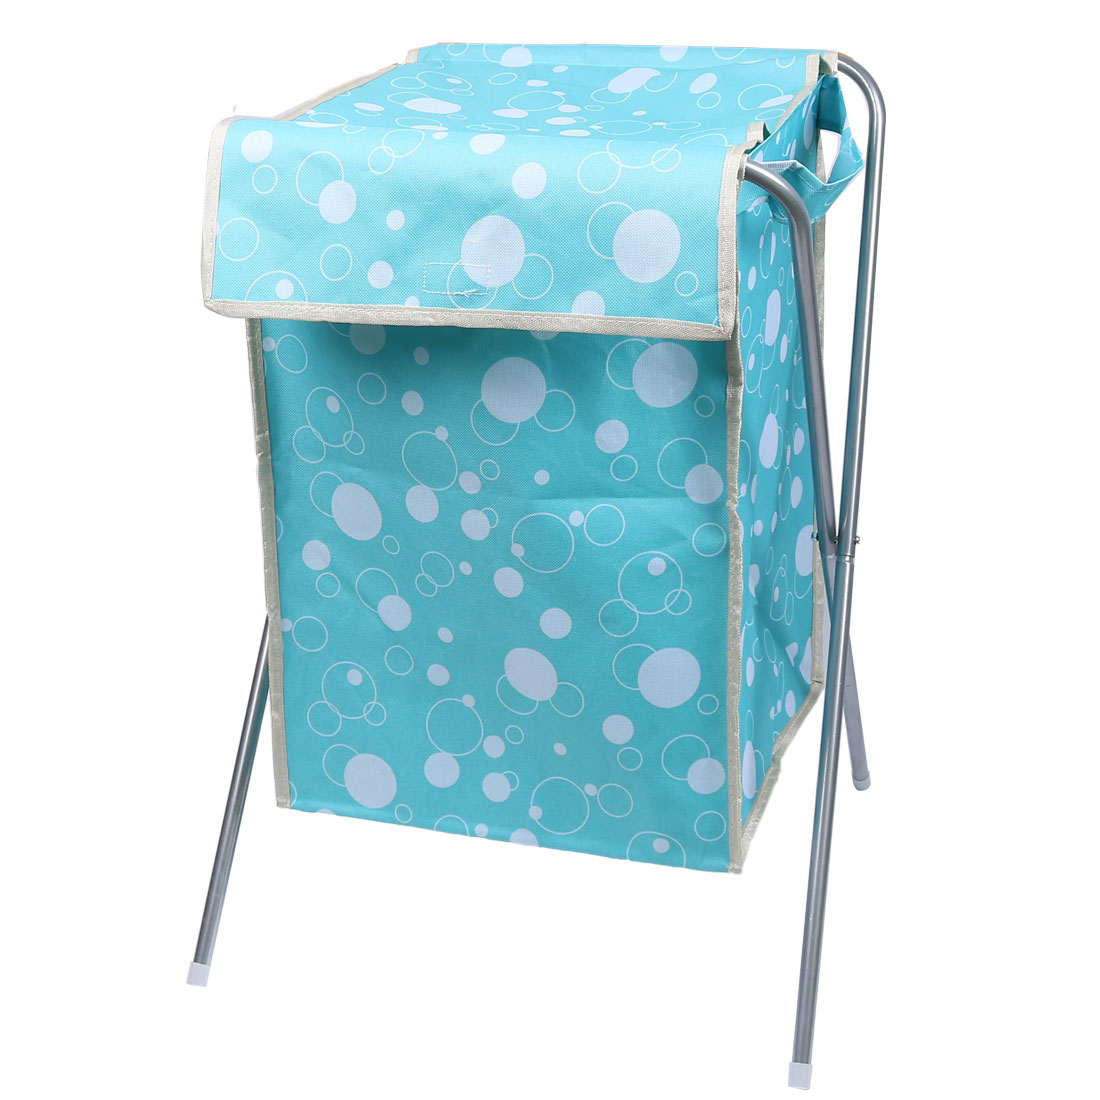 Folding Storage Bin Dirty Clothes Washing Laundry Basket Hamper Sky Blue